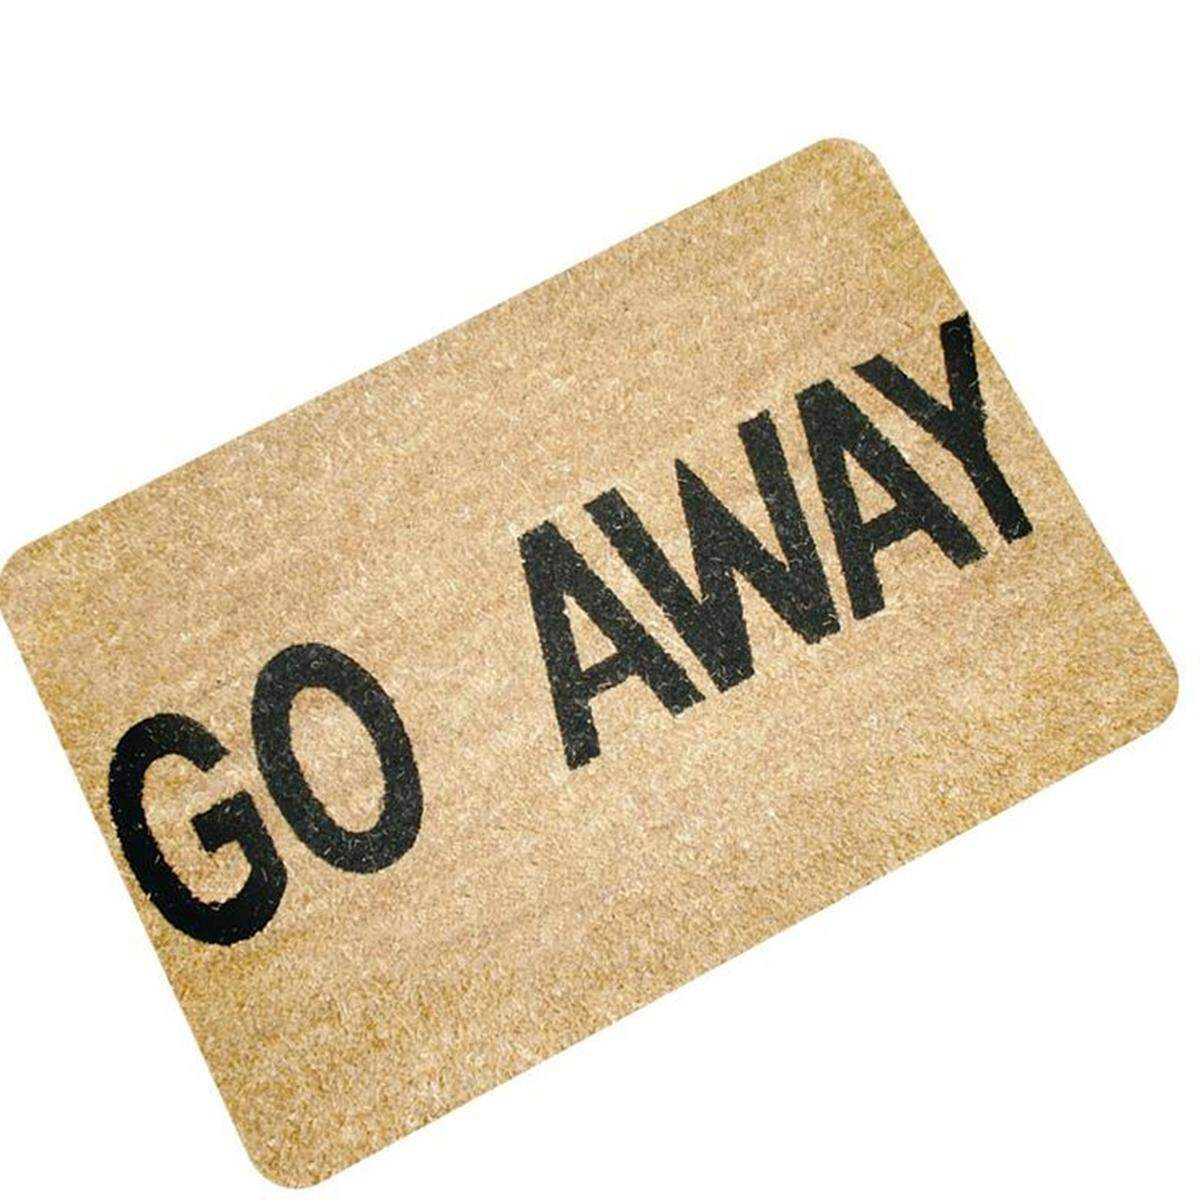 Letters Funny Door Mat Welcome Home Entrance Floor Rug Non Slip Doormat Carpet Go Away Intl Singapore